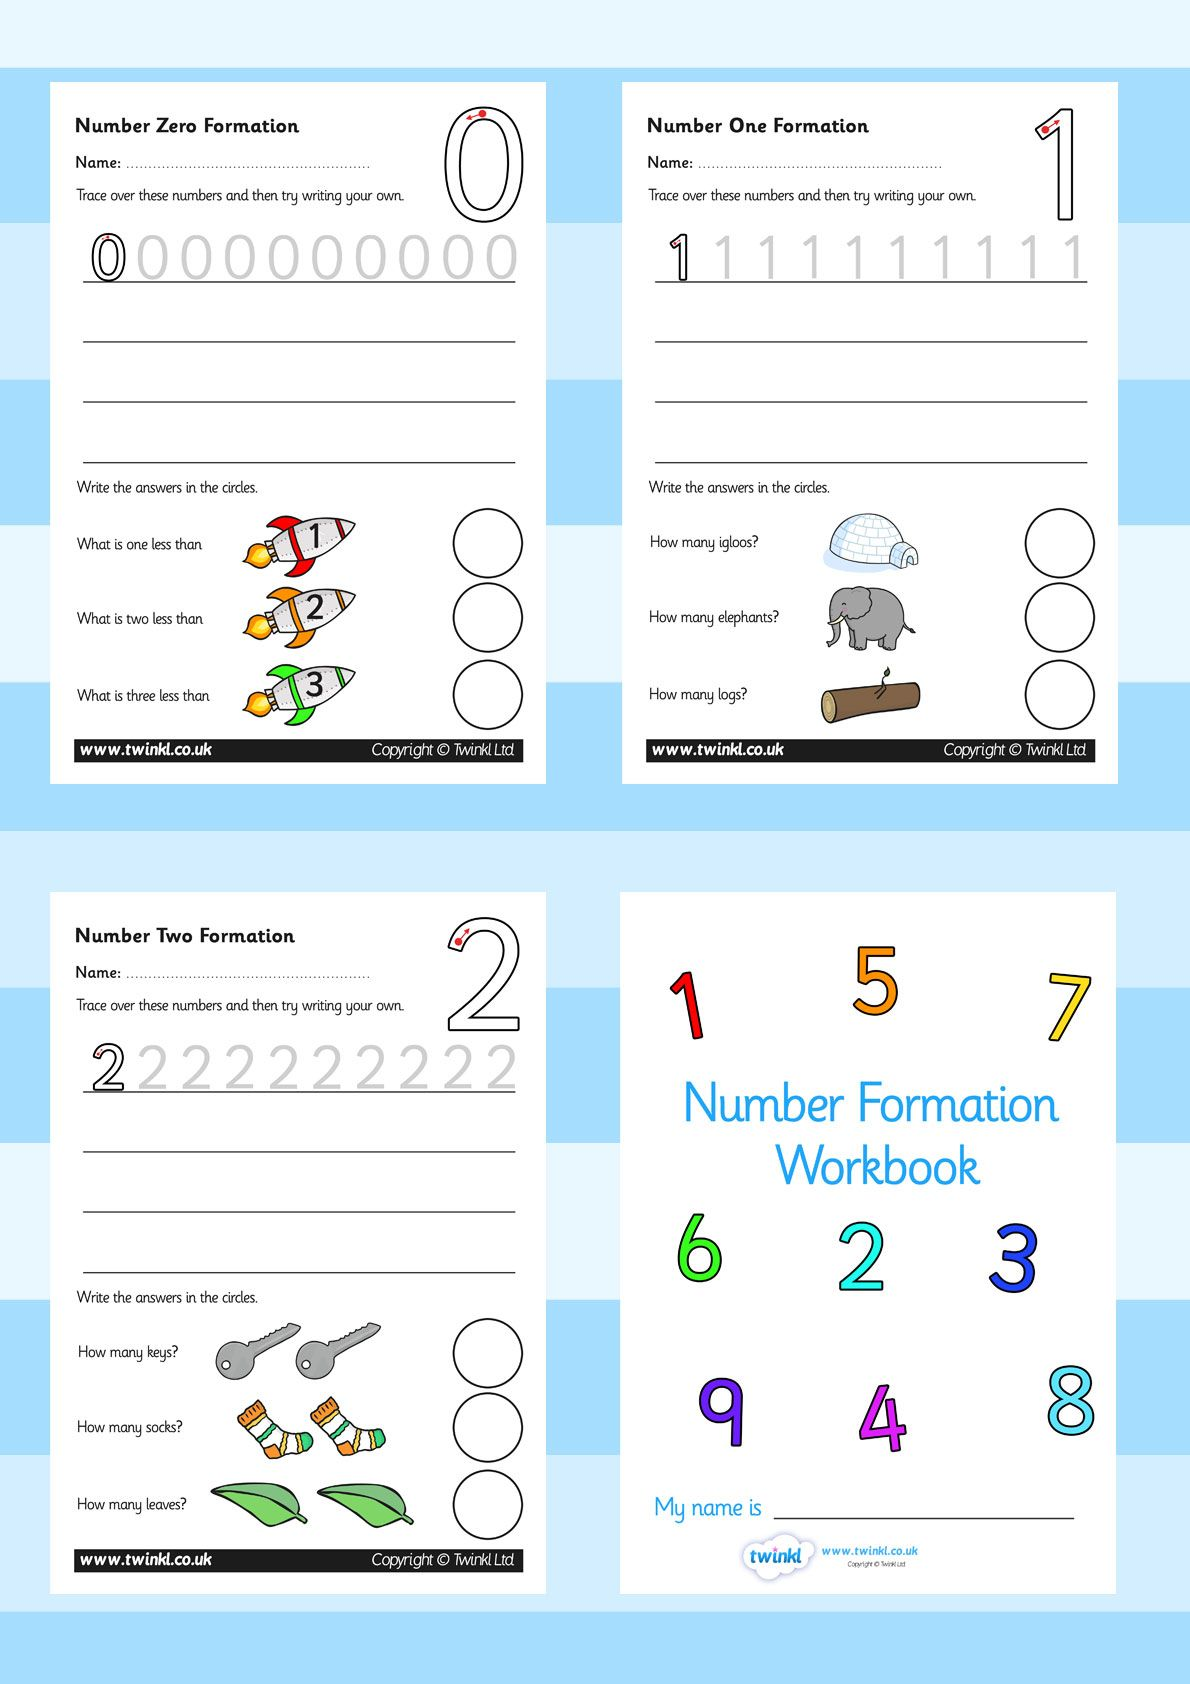 twinkl resources number formation workbook printable resources for primary eyfs ks1 and. Black Bedroom Furniture Sets. Home Design Ideas